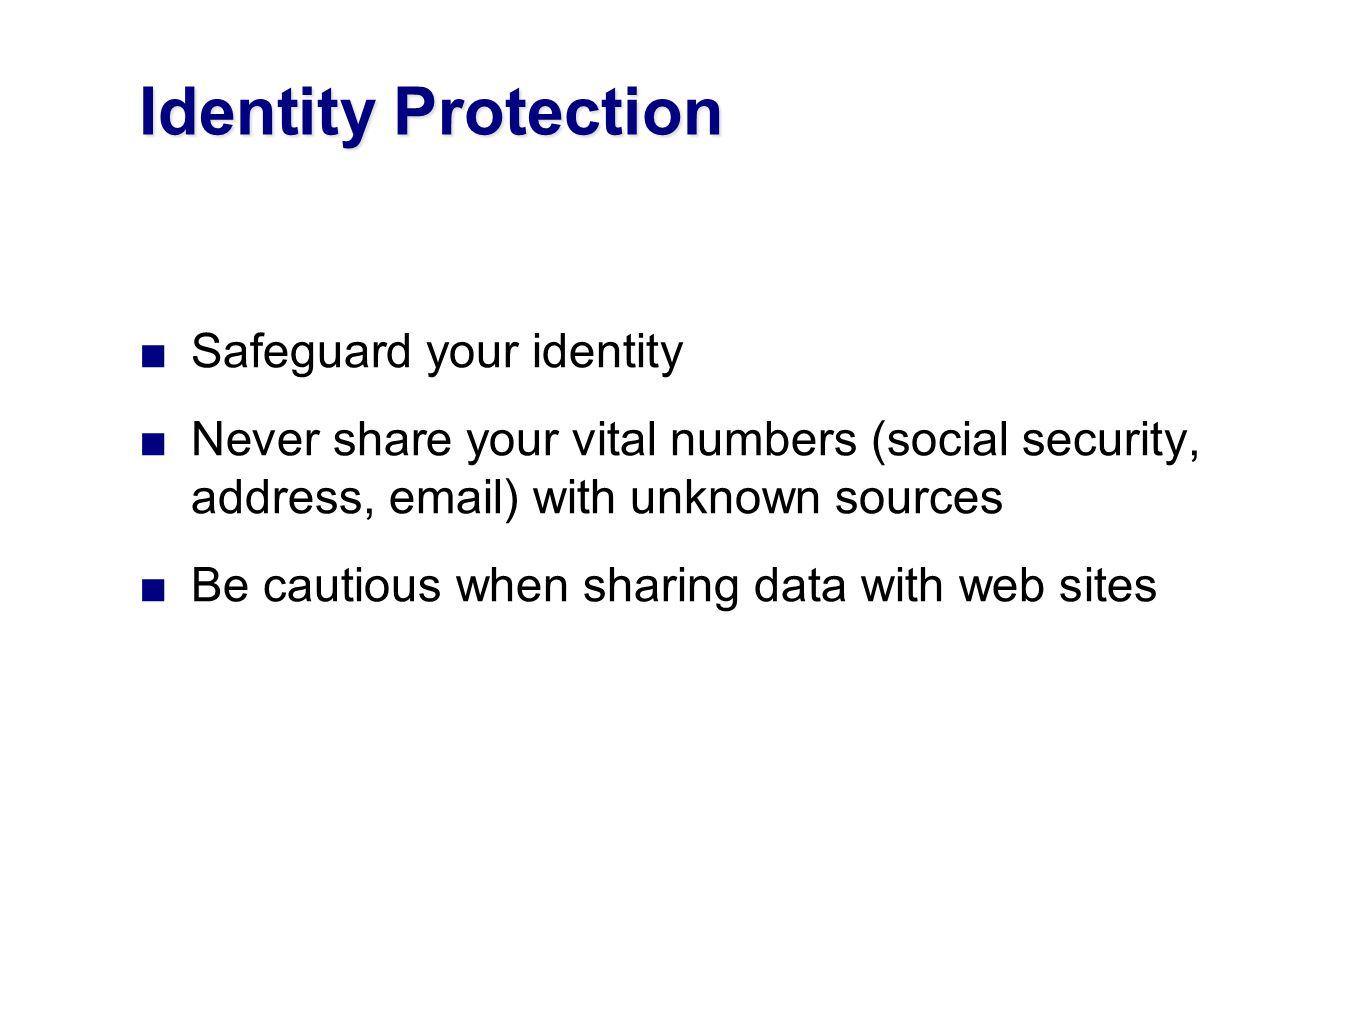 Safeguard your identity Never share your vital numbers (social security, address, email) with unknown sources Be cautious when sharing data with web sites Identity Protection